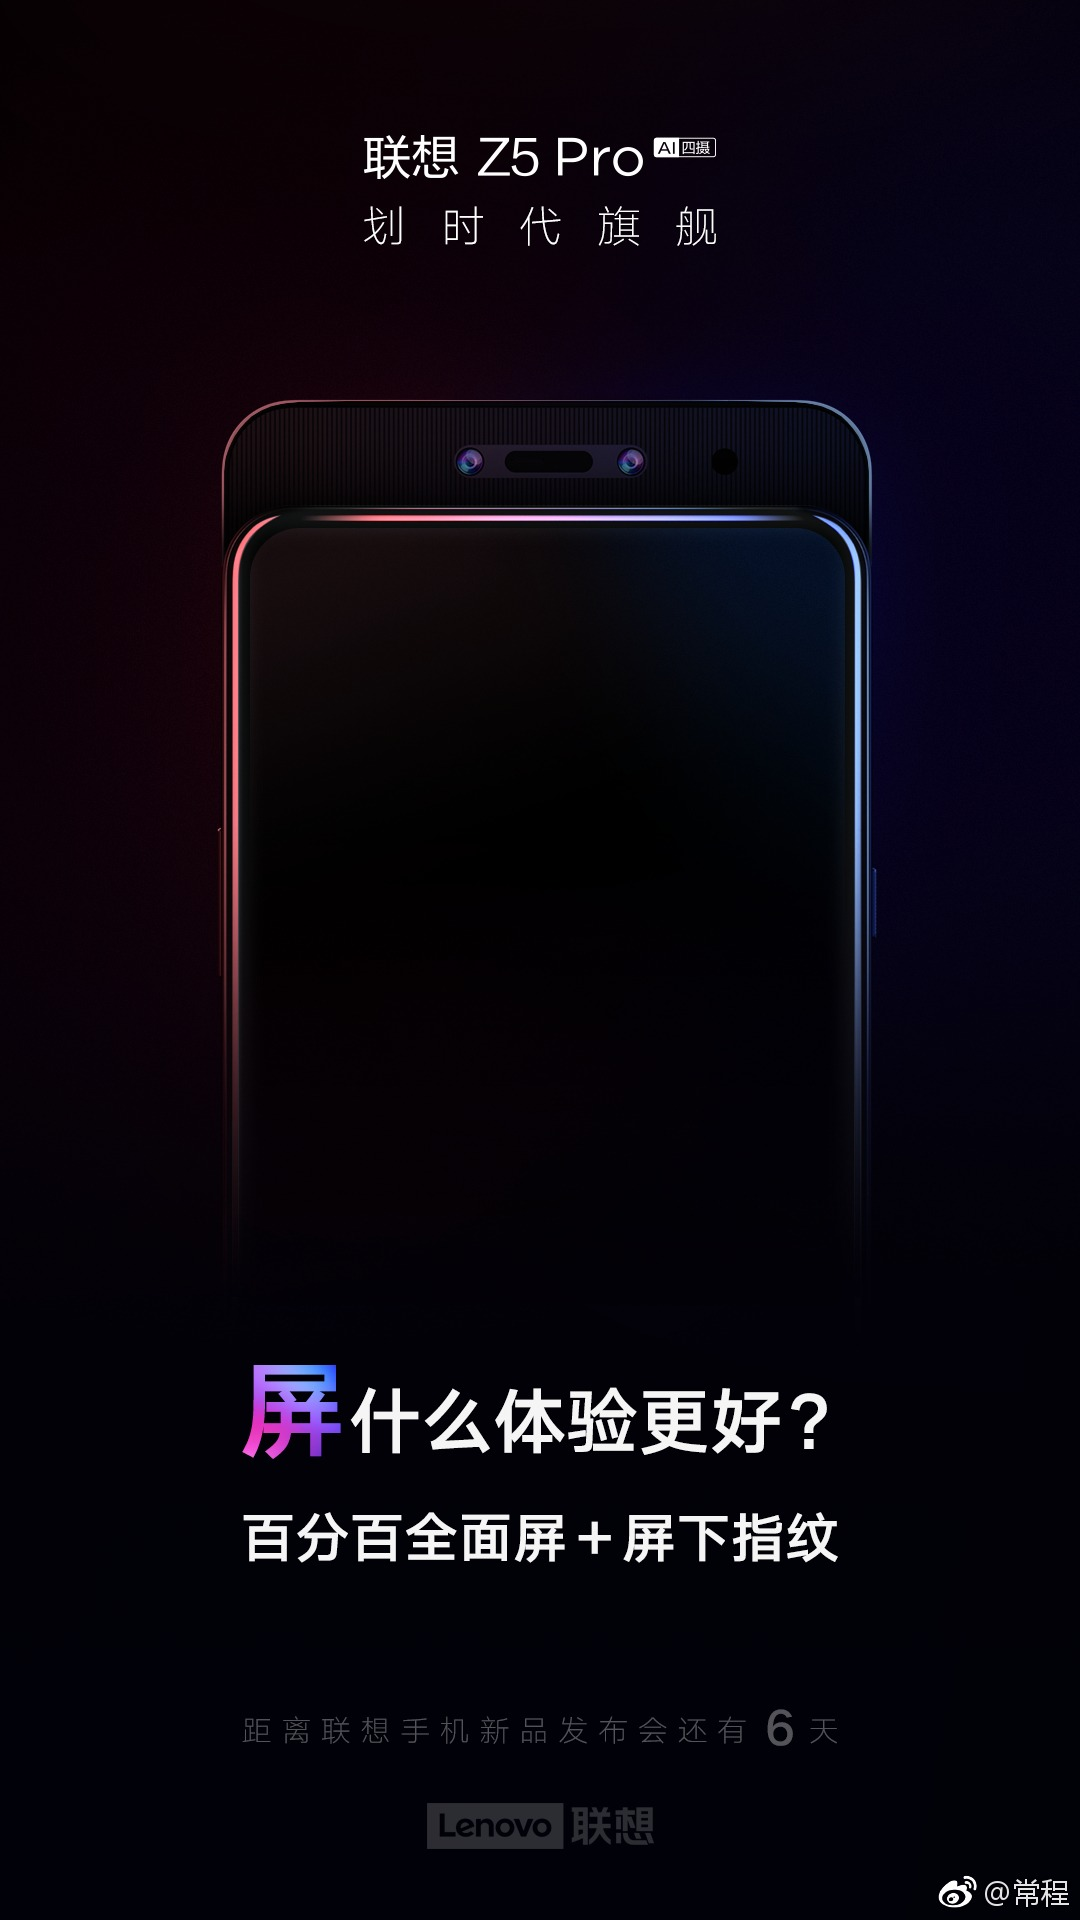 Lenovo Z5 Pro with camera slider is launching on November 1 3